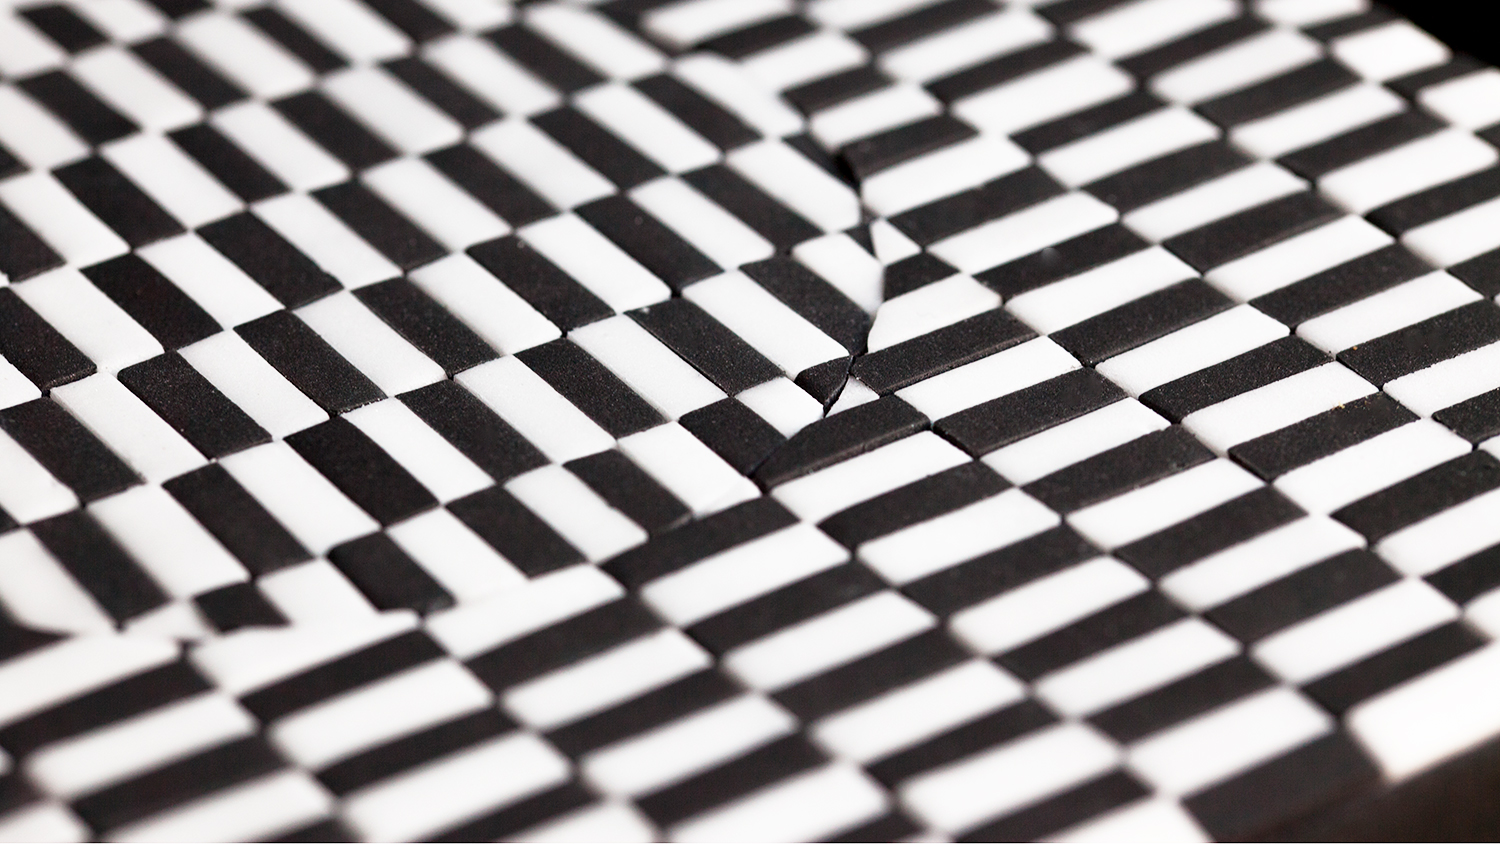 black and white optical illusion cake close up